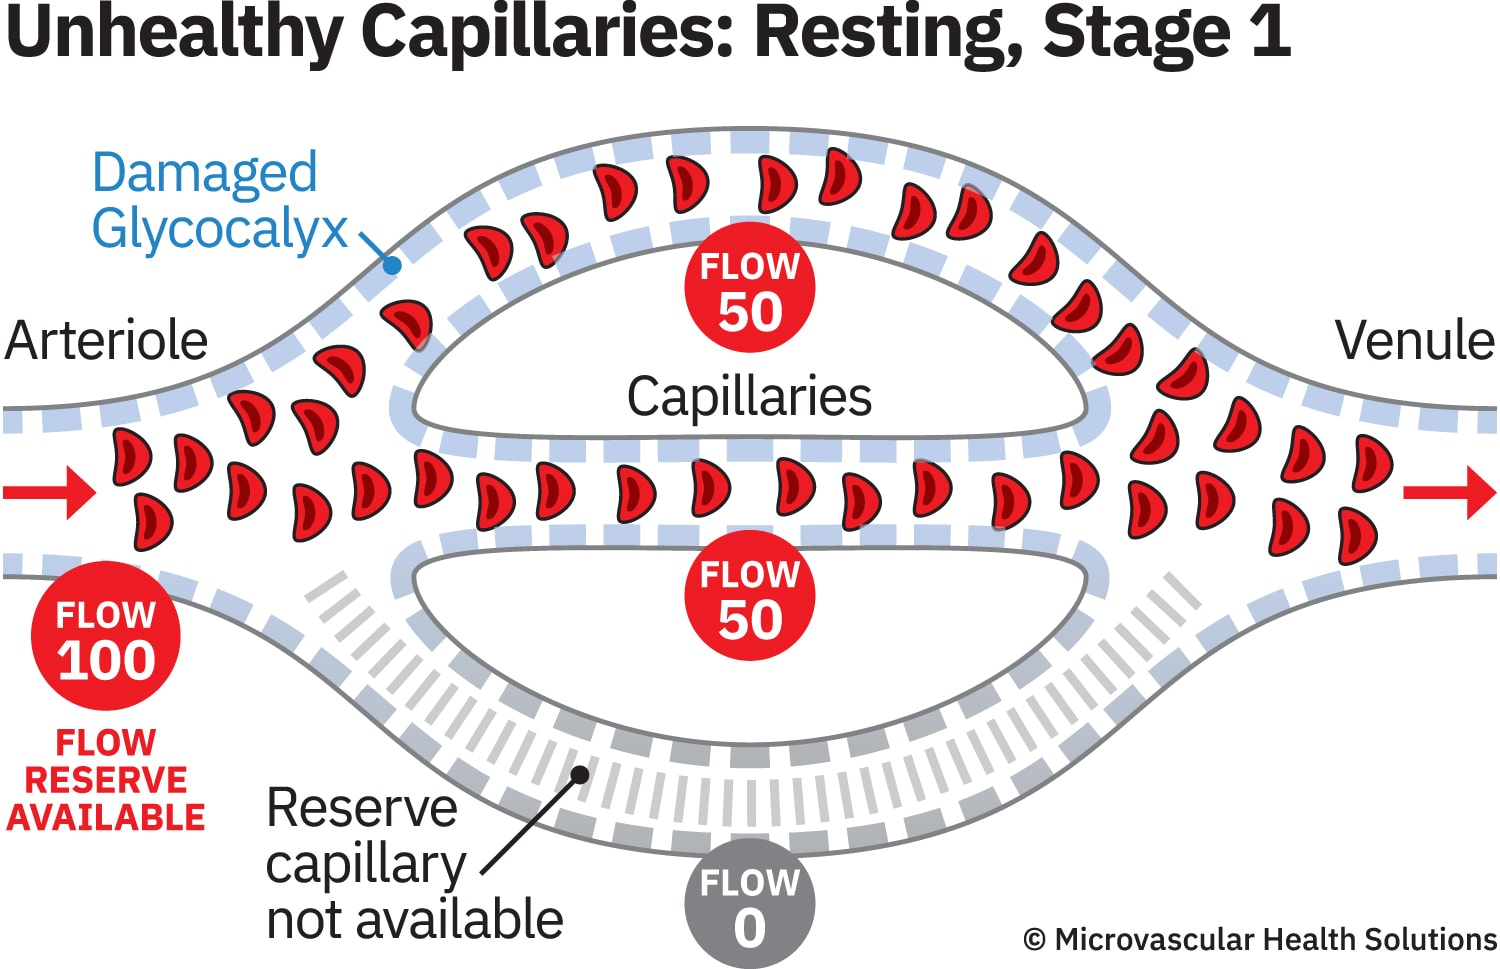 cap-unhealthy-resting-stage1-MHS-1500